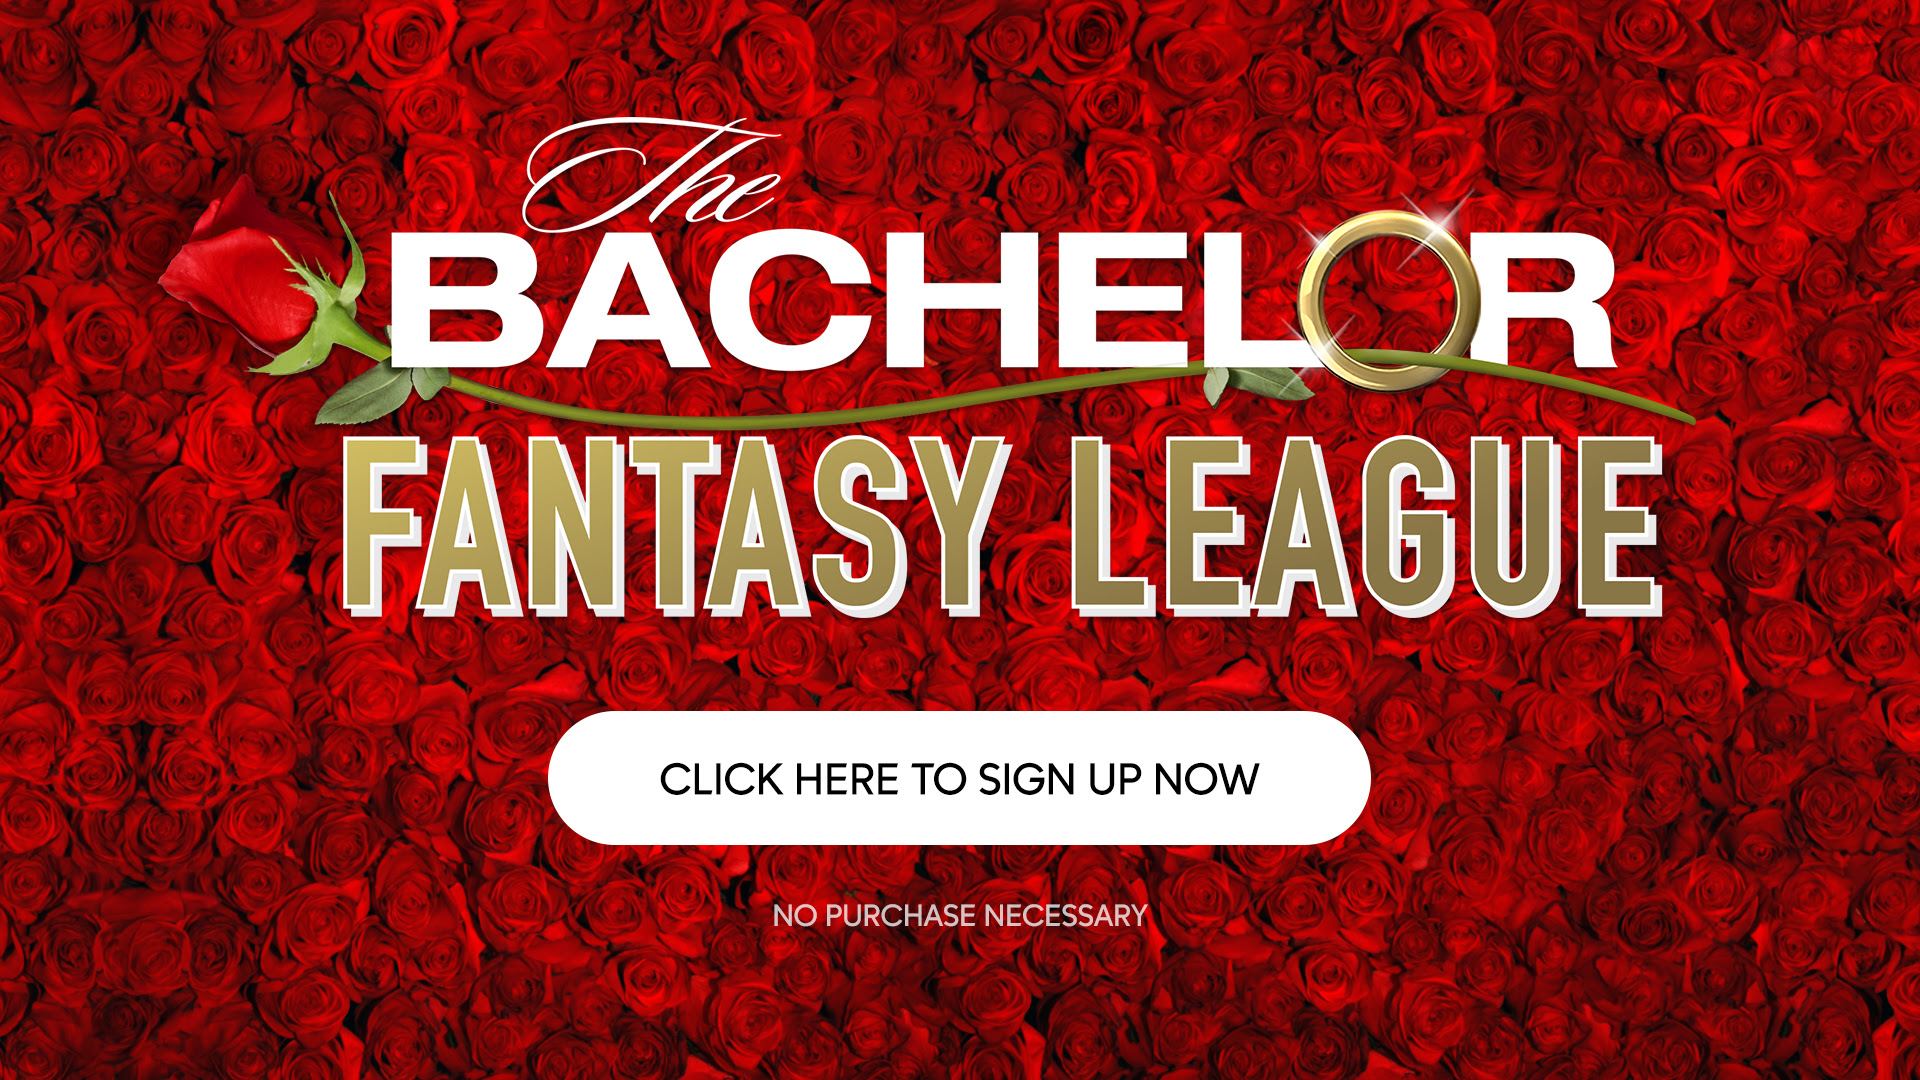 Sign Up For The Bachelor Fantasy League 2019 The Bachelor